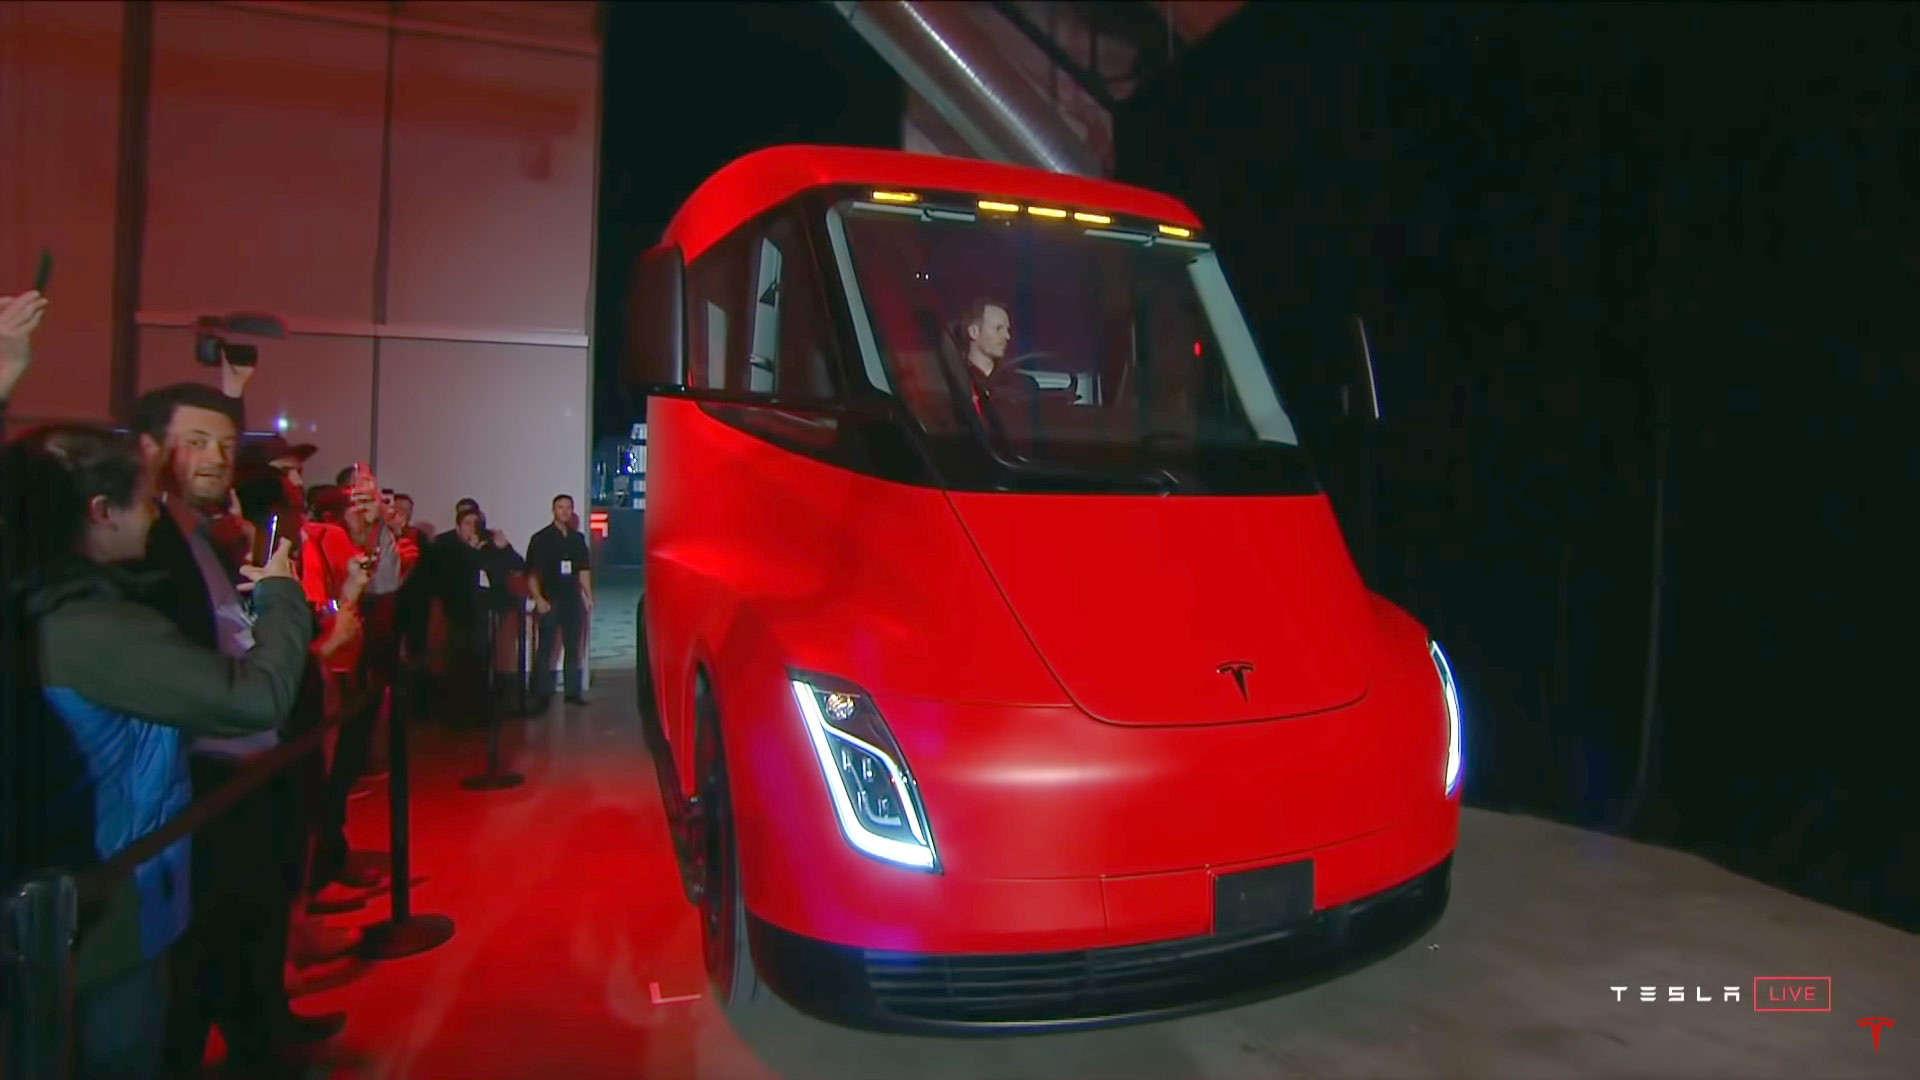 Red Tesla Semi truck presented at the Model Y event